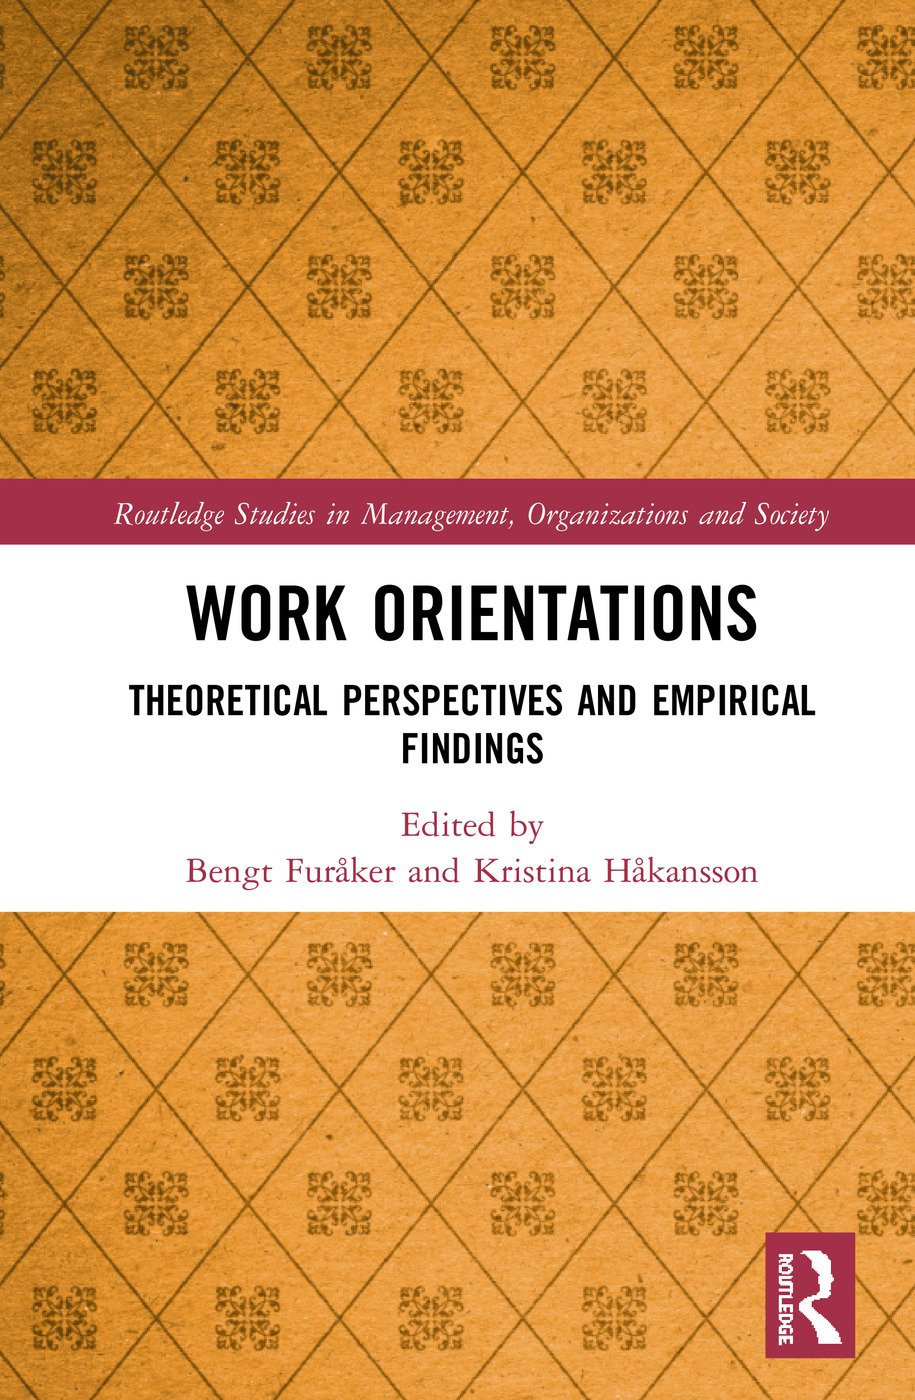 Work Orientations: Theoretical Perspectives and Empirical Findings book cover